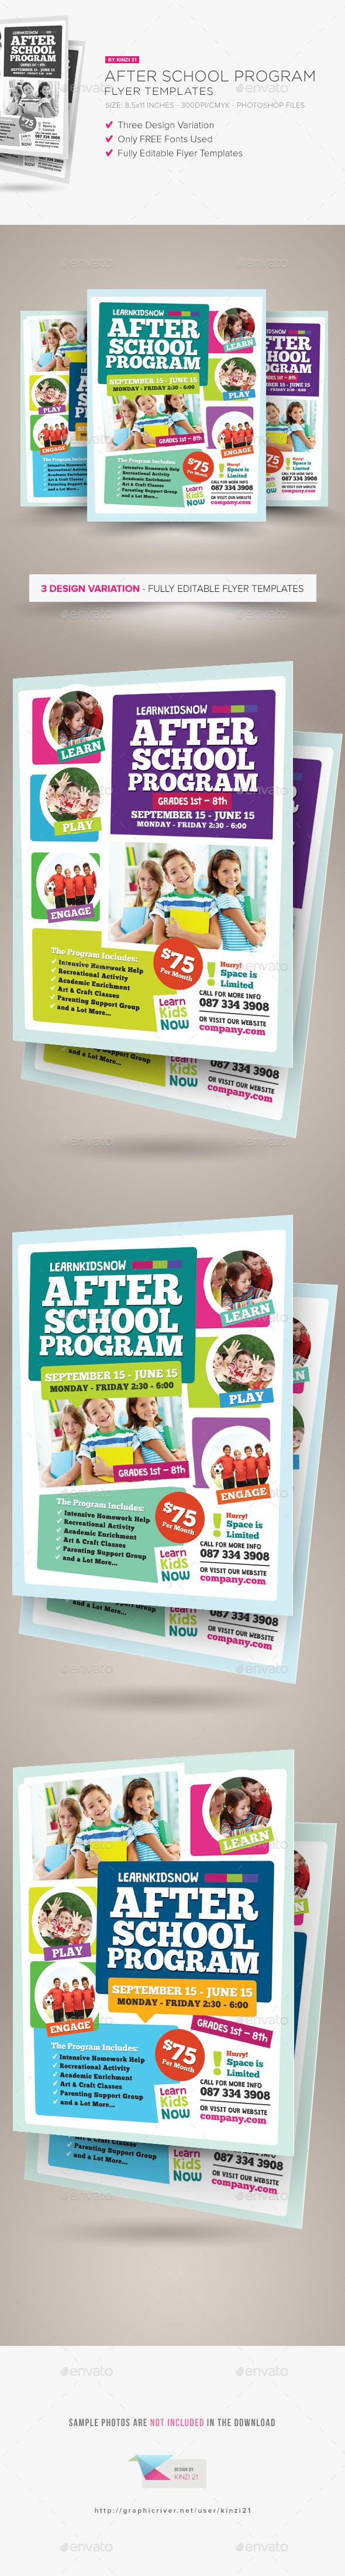 After School Program Flyer Templates Corporate Flyers After